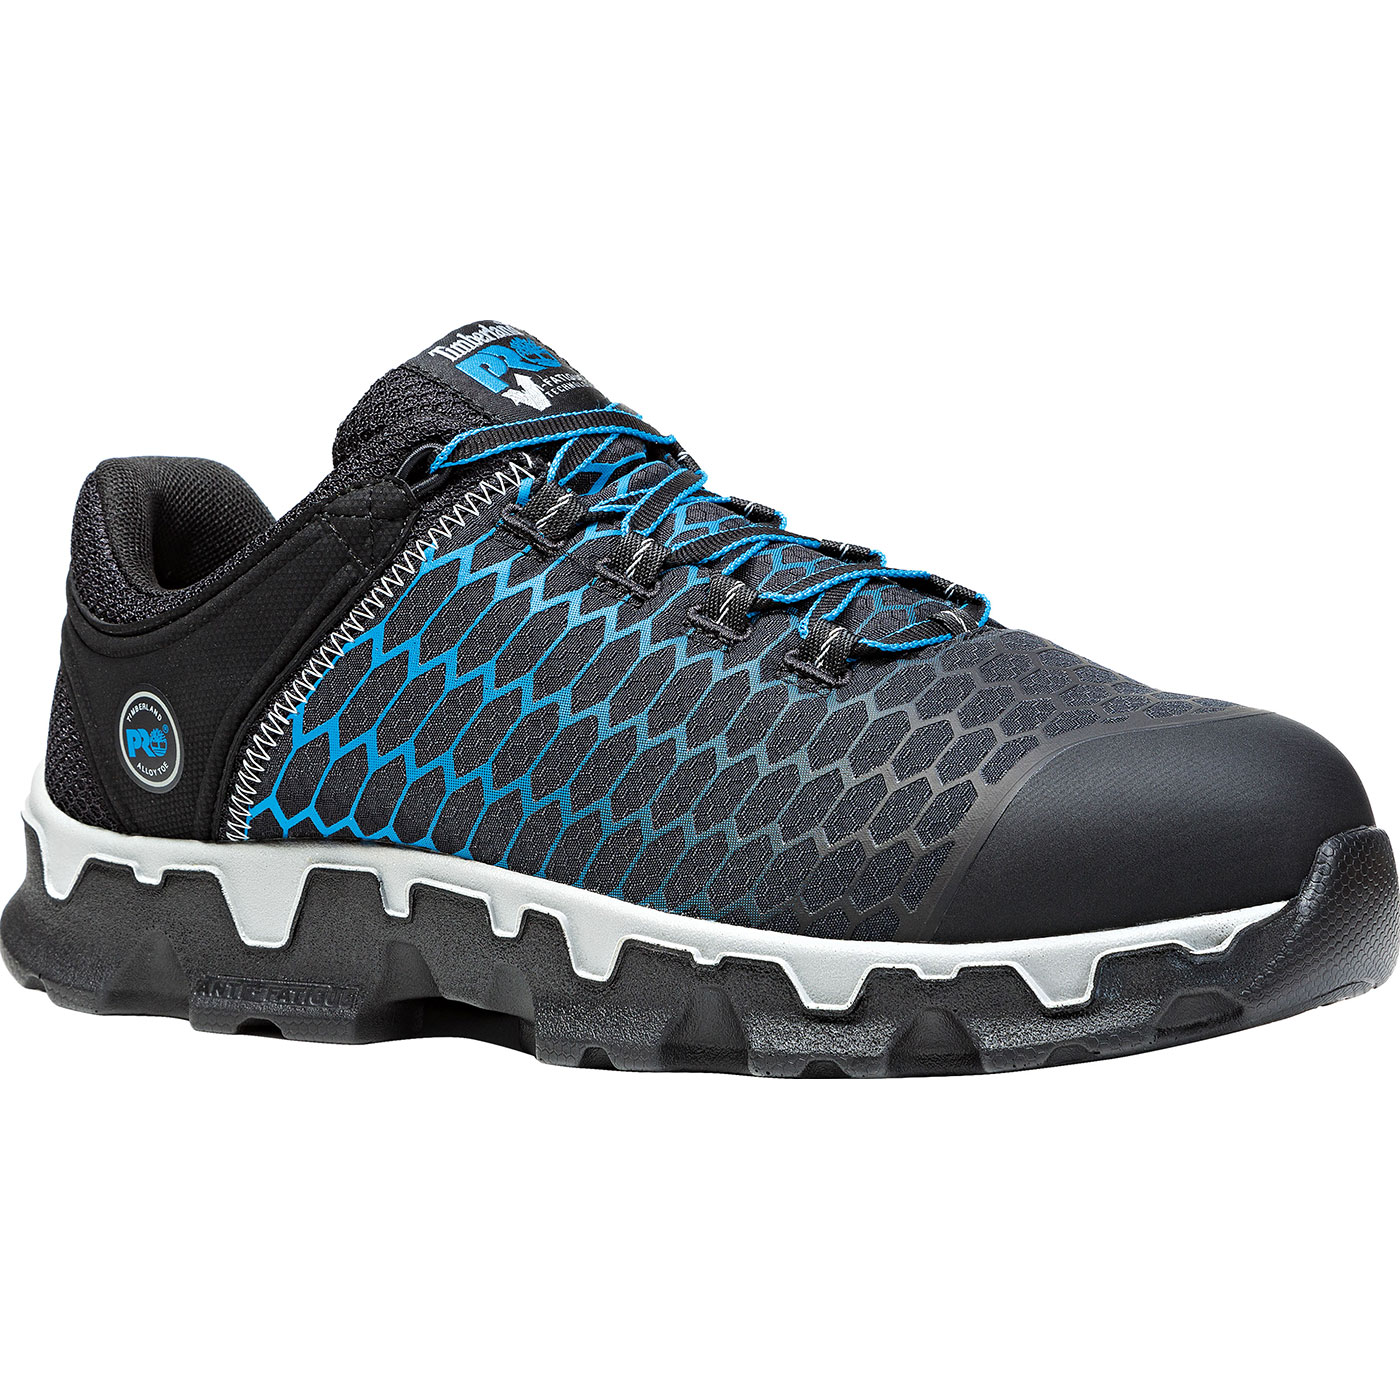 Timberland Pro Powertrain Sport Alloy Toe Work Athletic